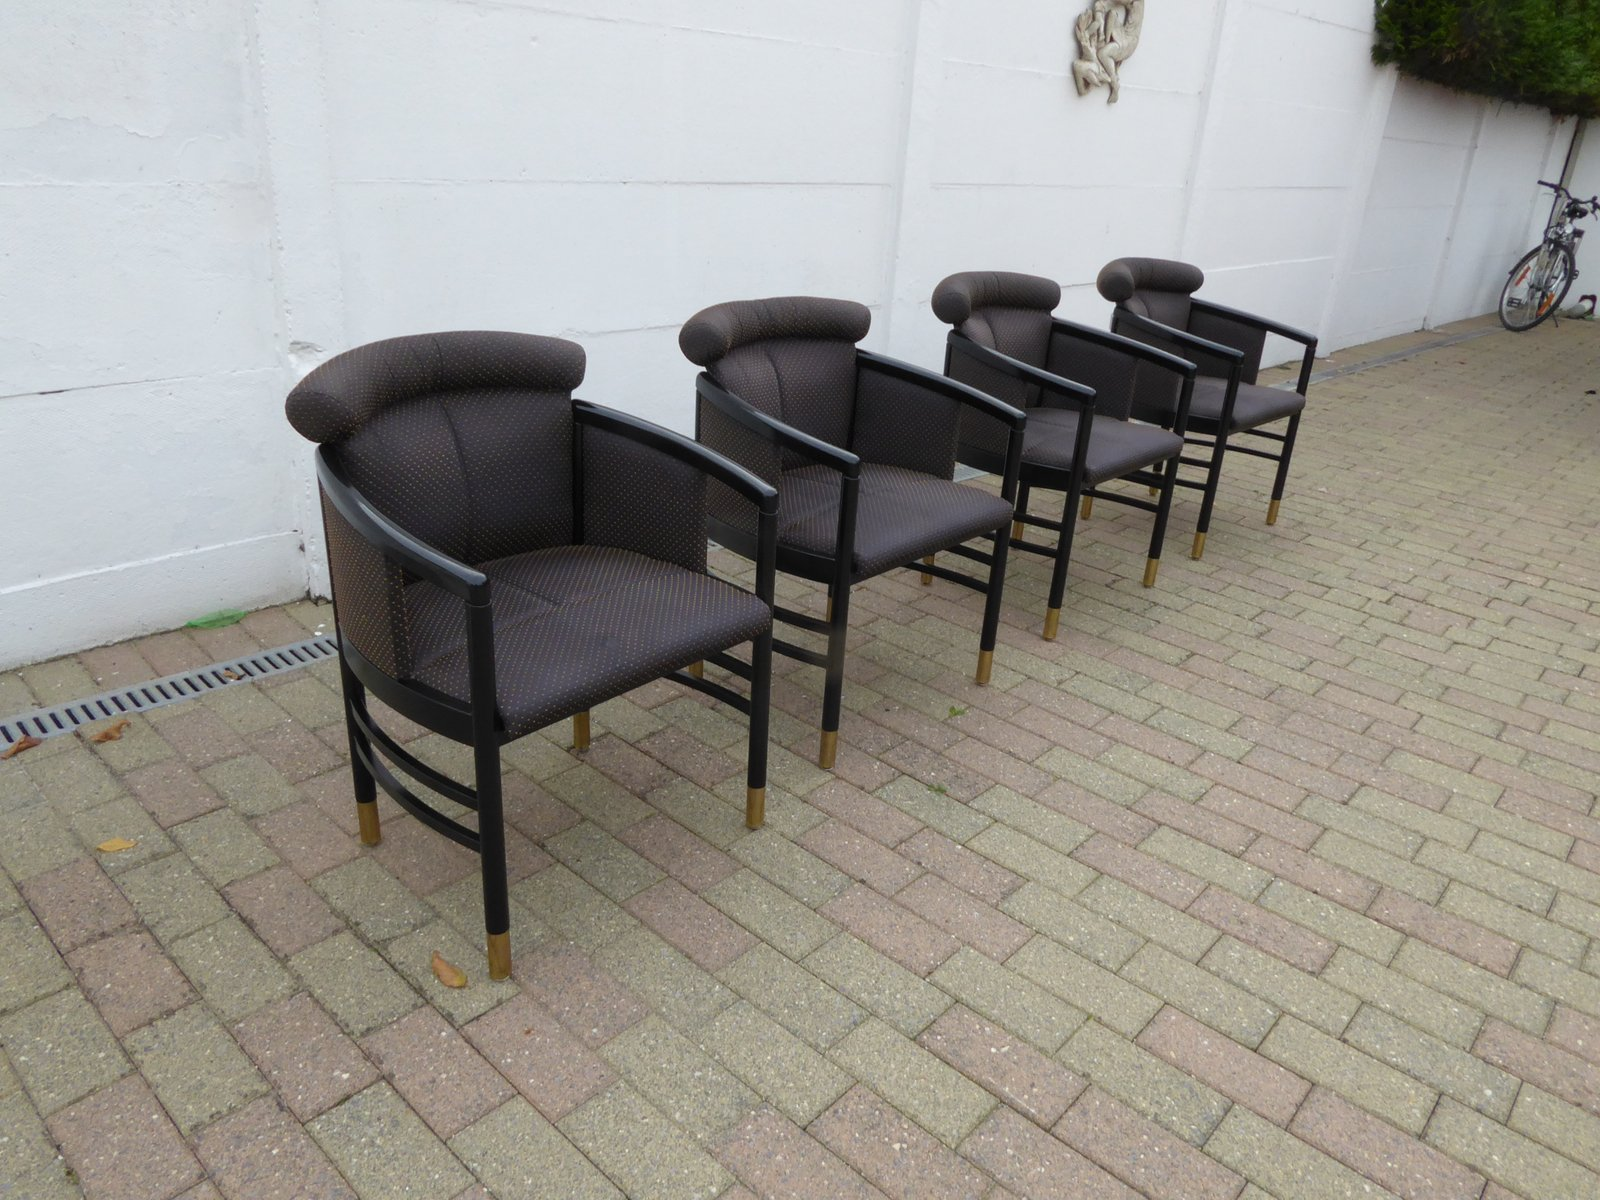 fauteuil noir de thonet autriche 1980s en vente sur pamono. Black Bedroom Furniture Sets. Home Design Ideas